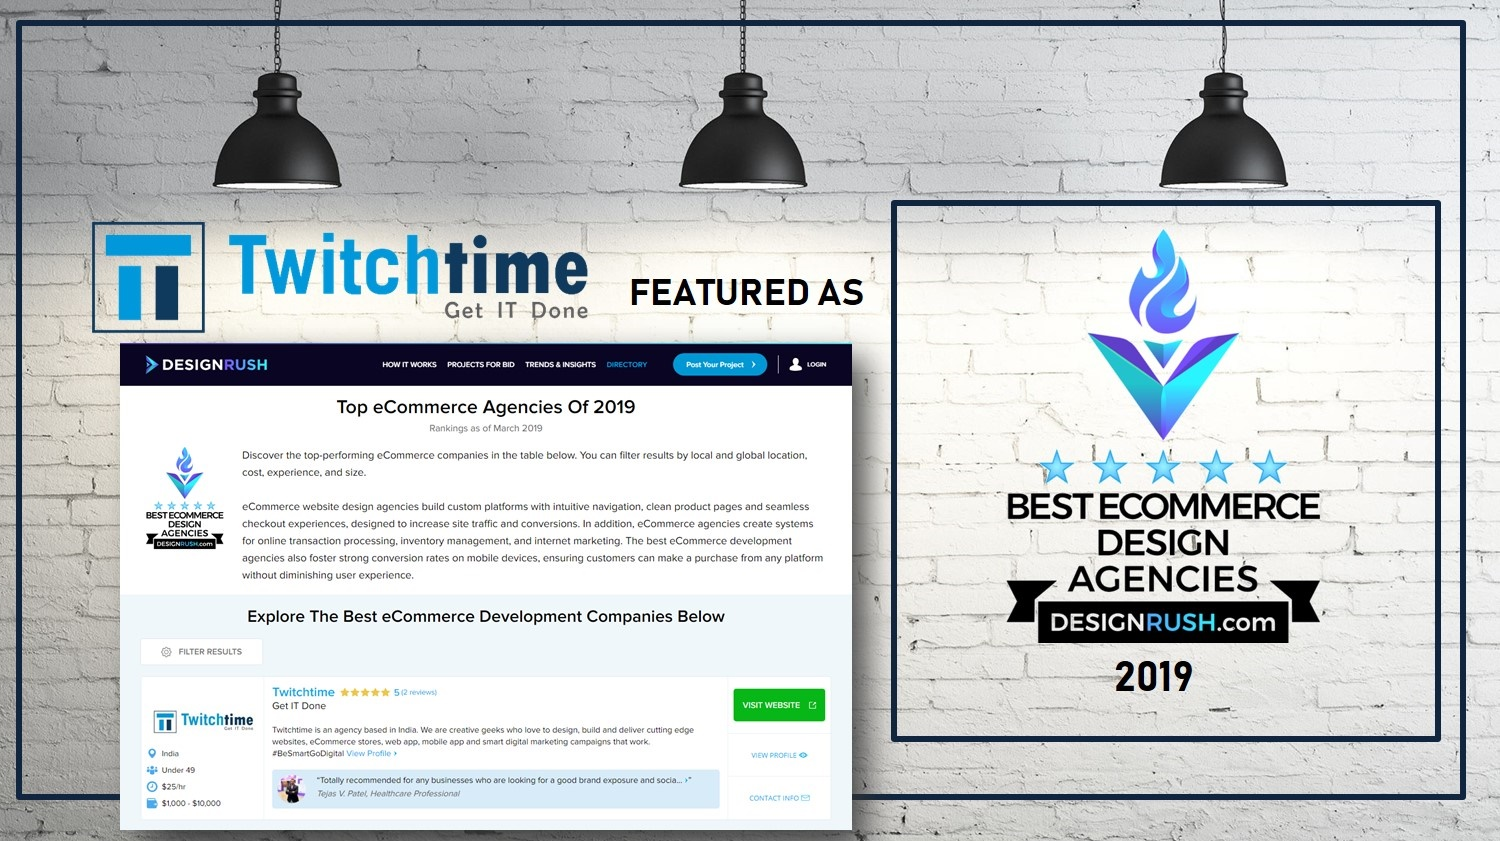 Twitchtime Featured as Top eCommerce Website Development